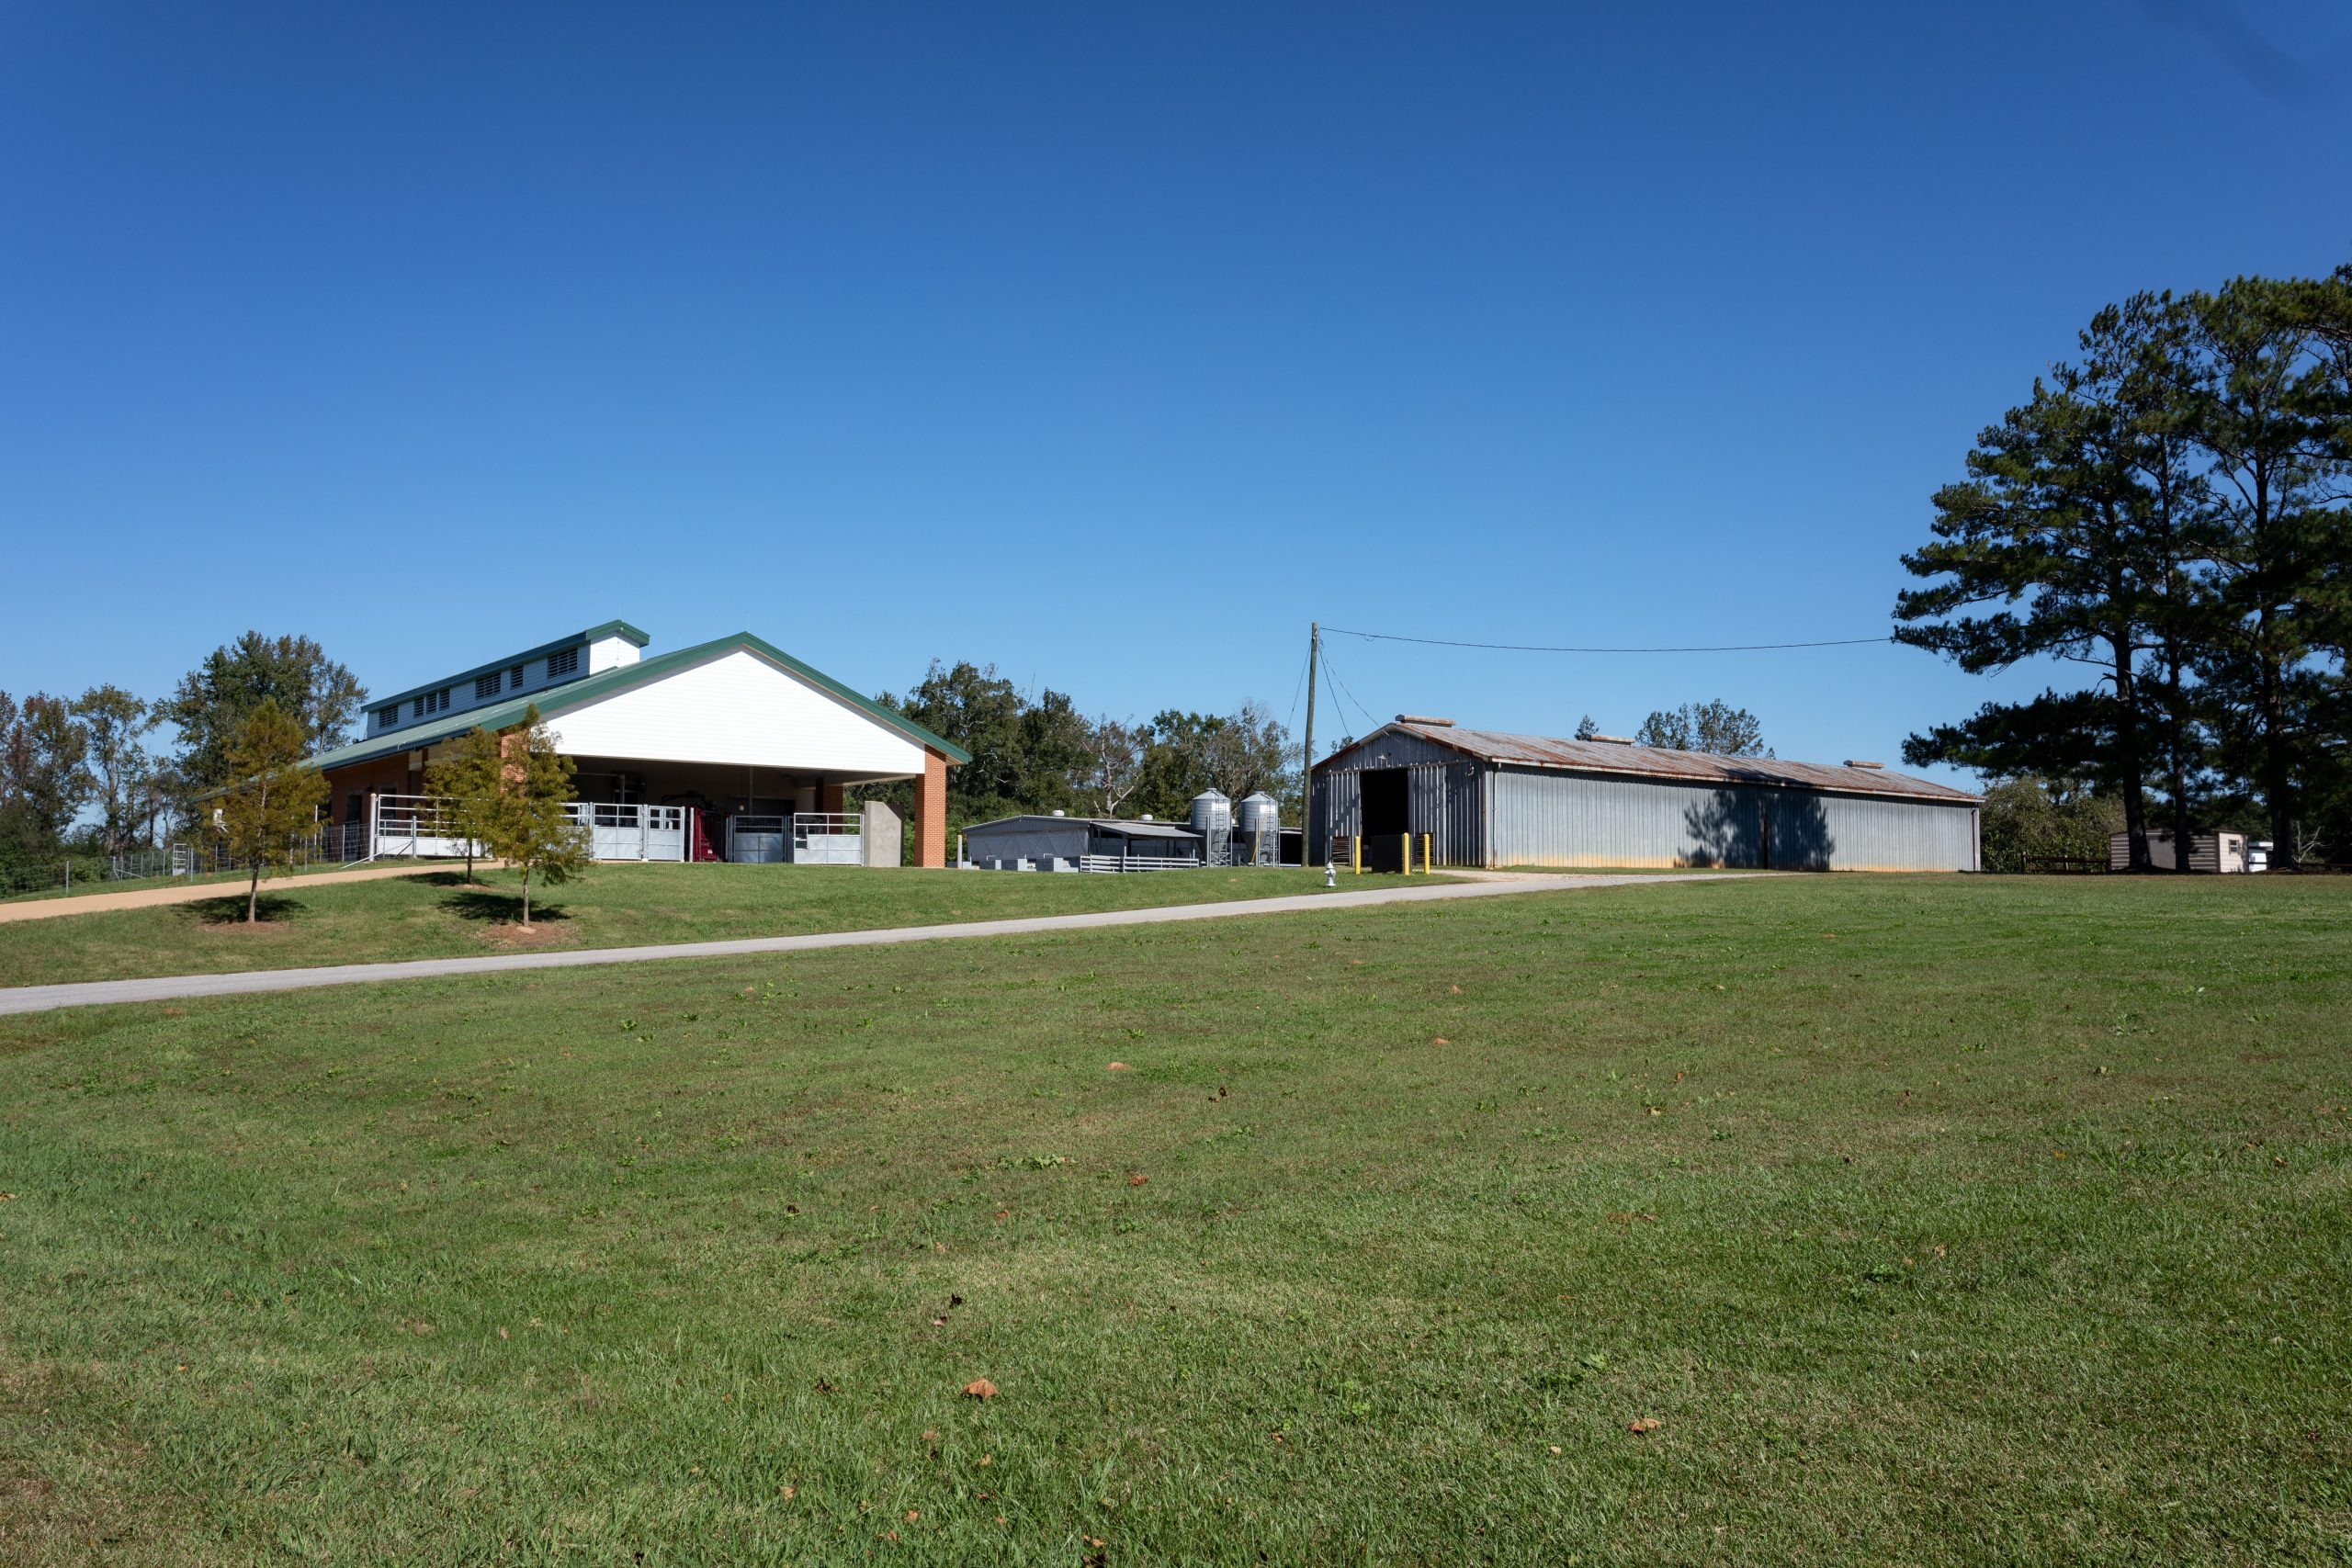 Driveway leading to red brick barn and two silver metal rectangular buildings